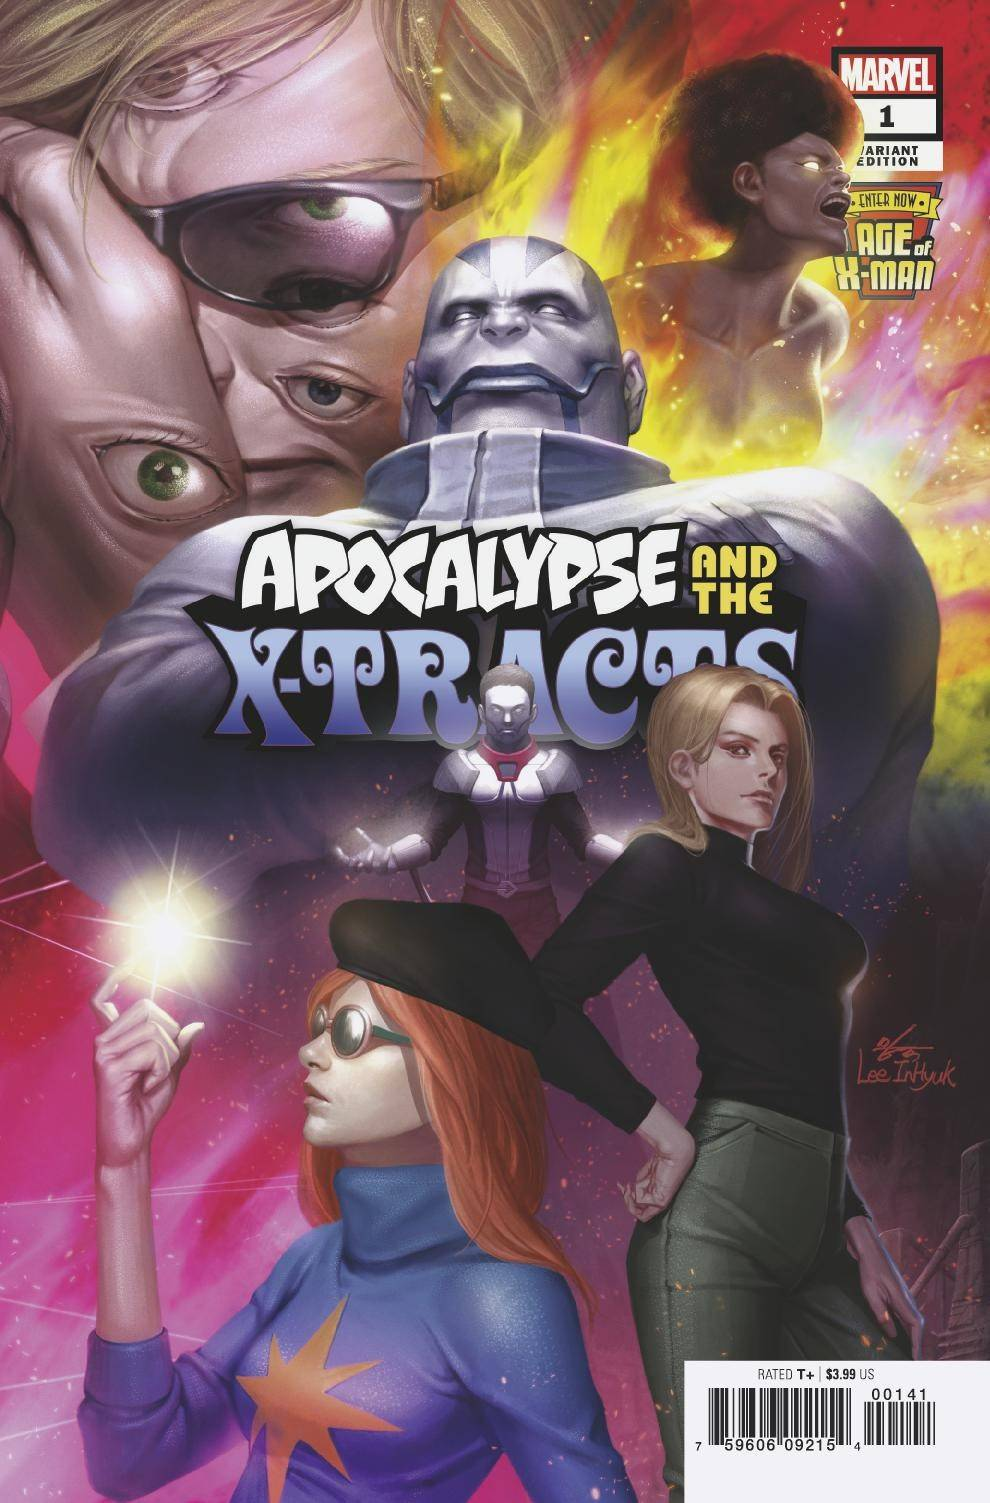 AGE OF X-MAN APOCALYPSE AND X-TRACTS 1 of 5 INHYUK LEE CONNECTING VAR.jpg